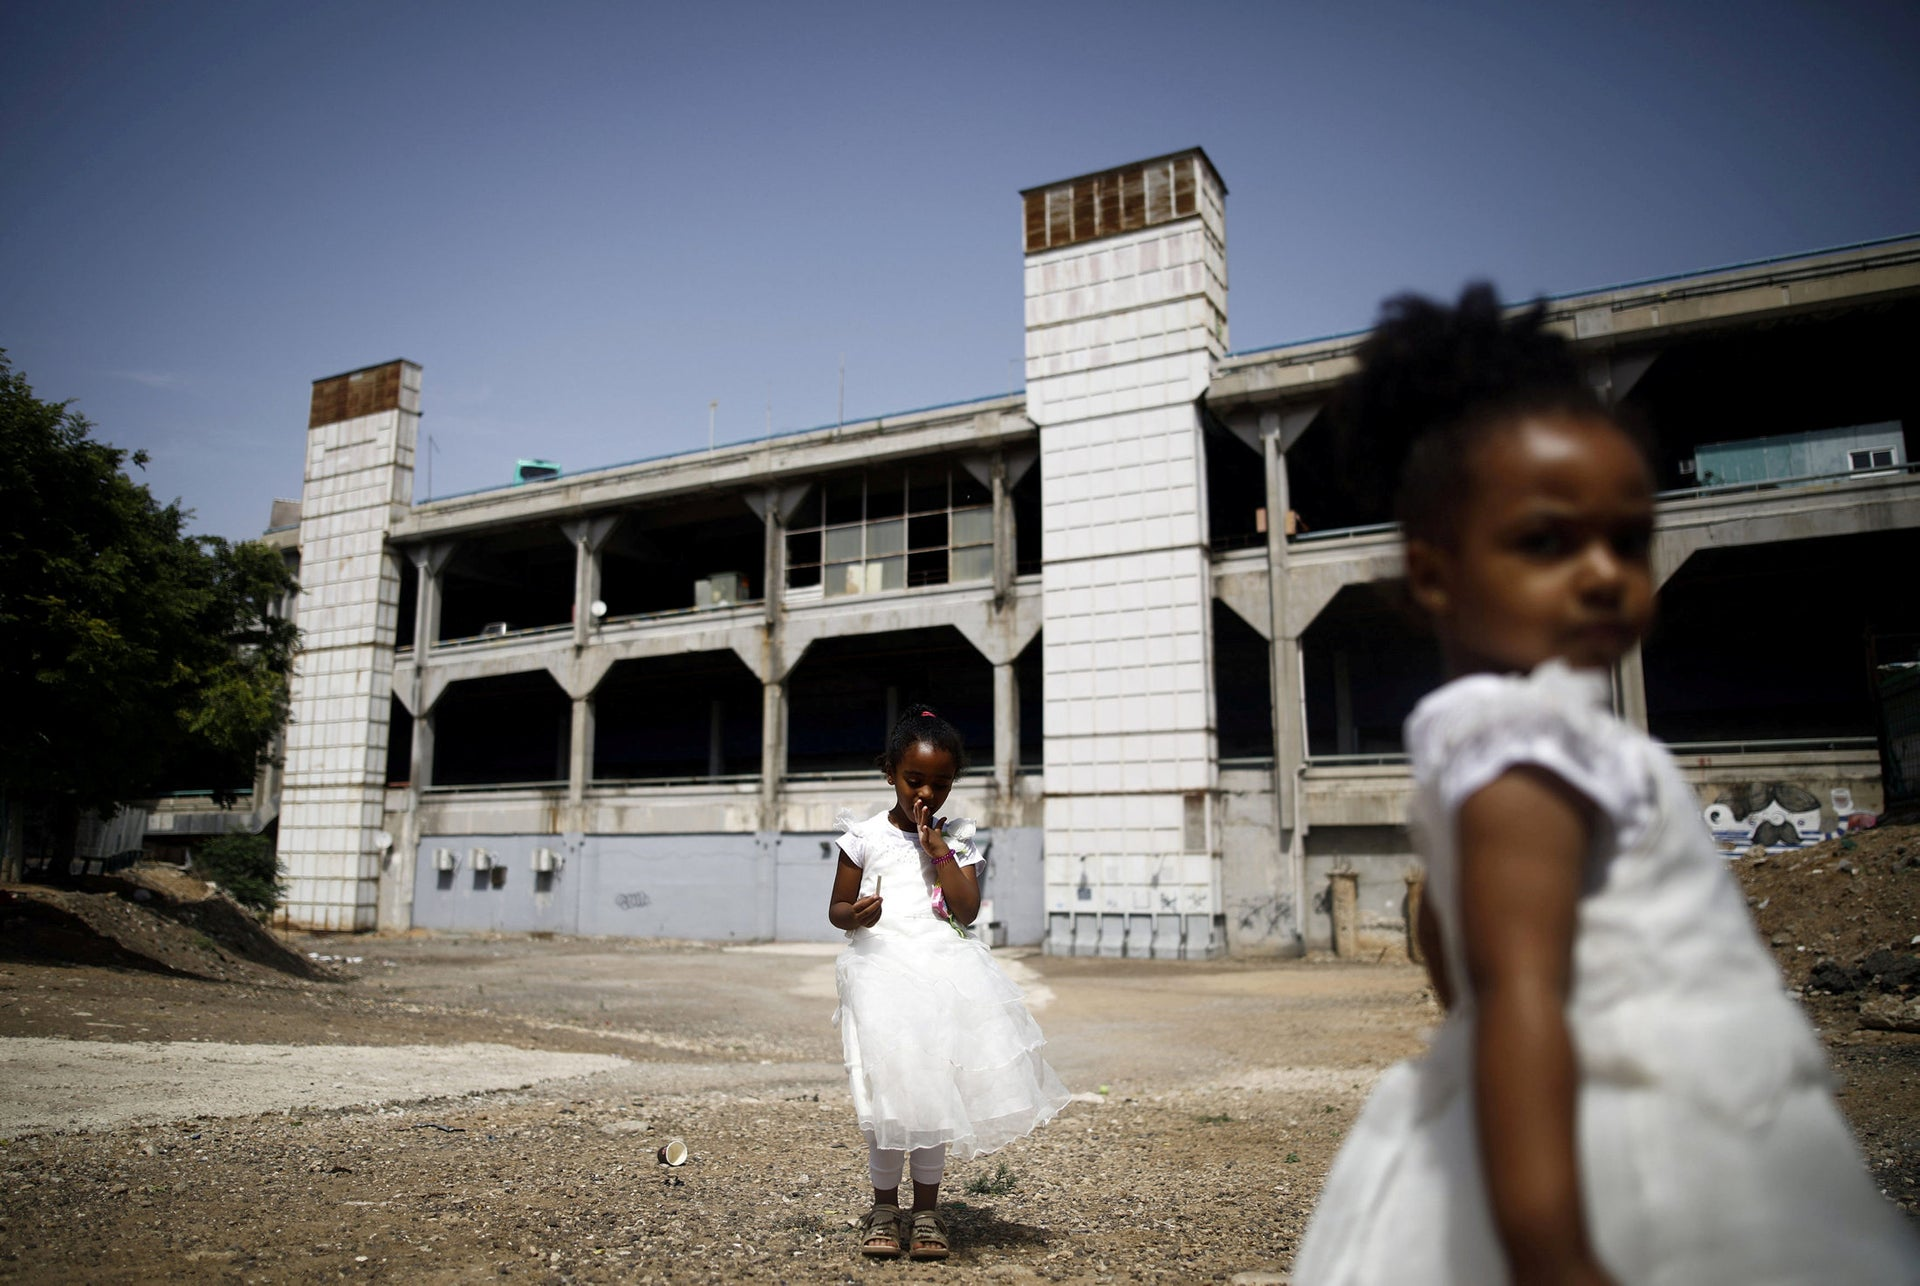 Girls from Eritrea play in an open area opposite to the Central Bus Station.